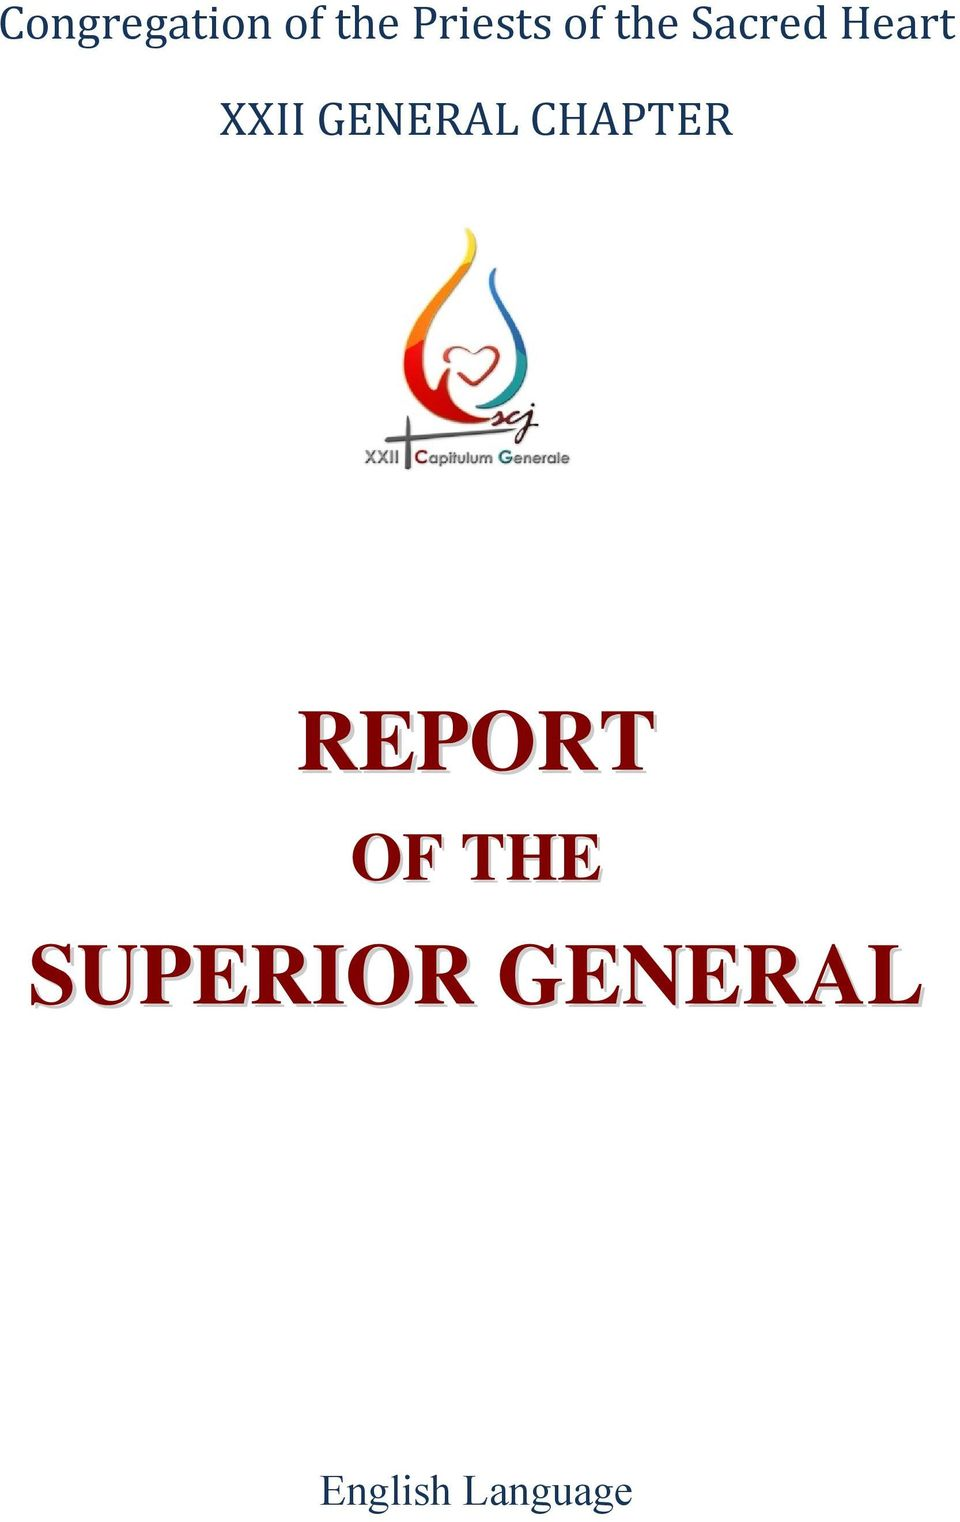 GENERAL CHAPTER REPORT OF